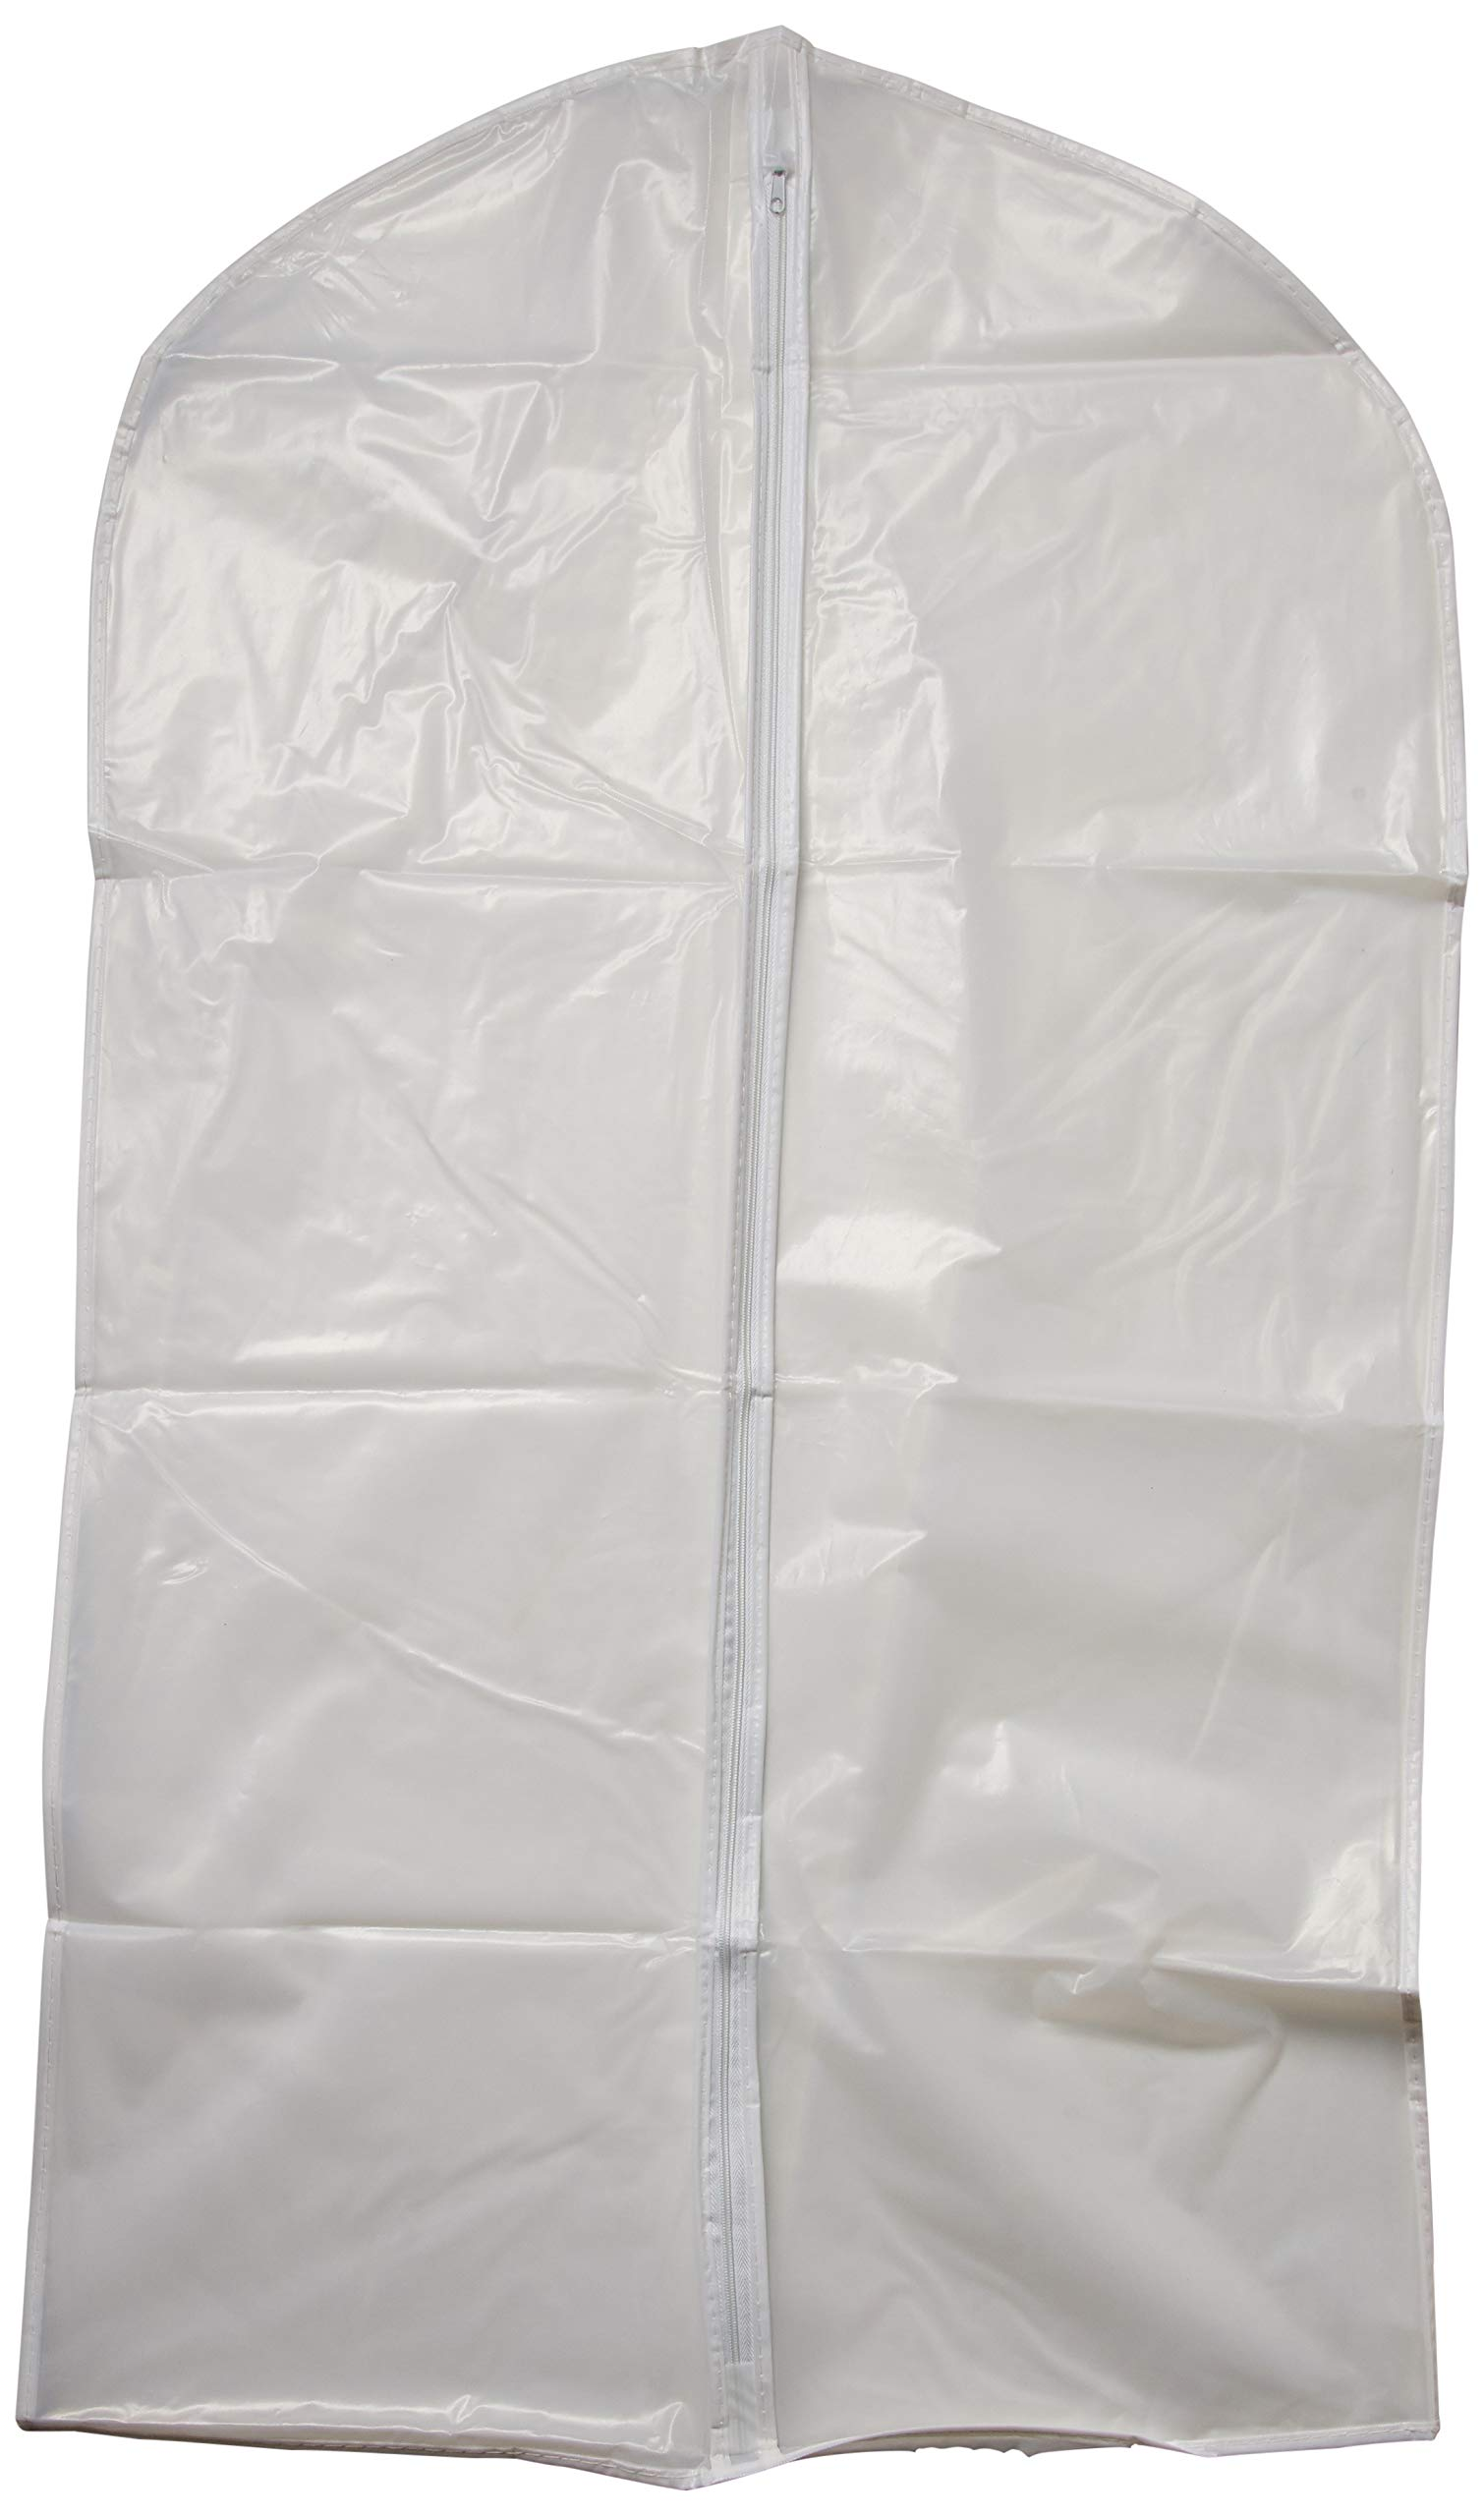 GTI Transparent Garment Covers Zipper Clothes Bags - Set of 5, (5 x Small)